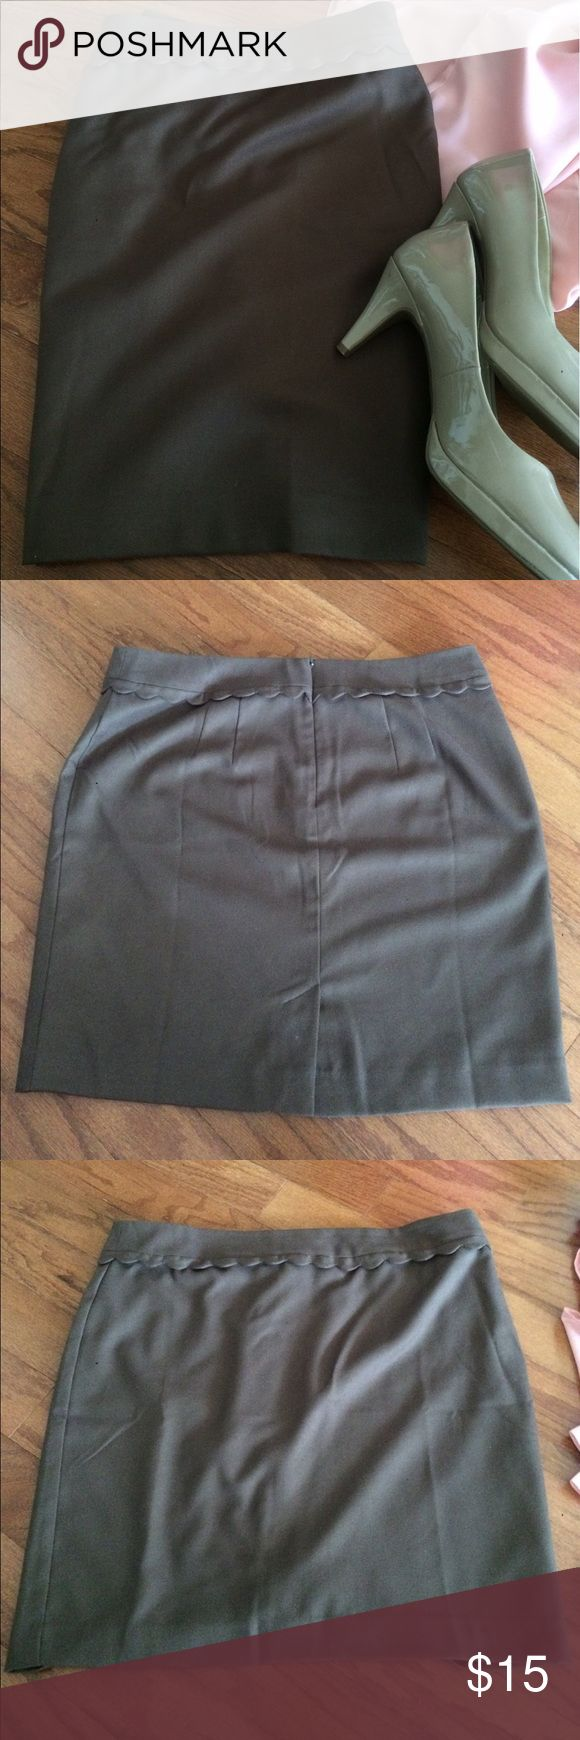 NWOT LOFT Brown Skirt - Sz 12 New Without Tags LOFT brown pencil skirt with scallop detail at the waistband. Fully lined. Never worn, perfect condition. Fits true to size LOFT Skirts Pencil